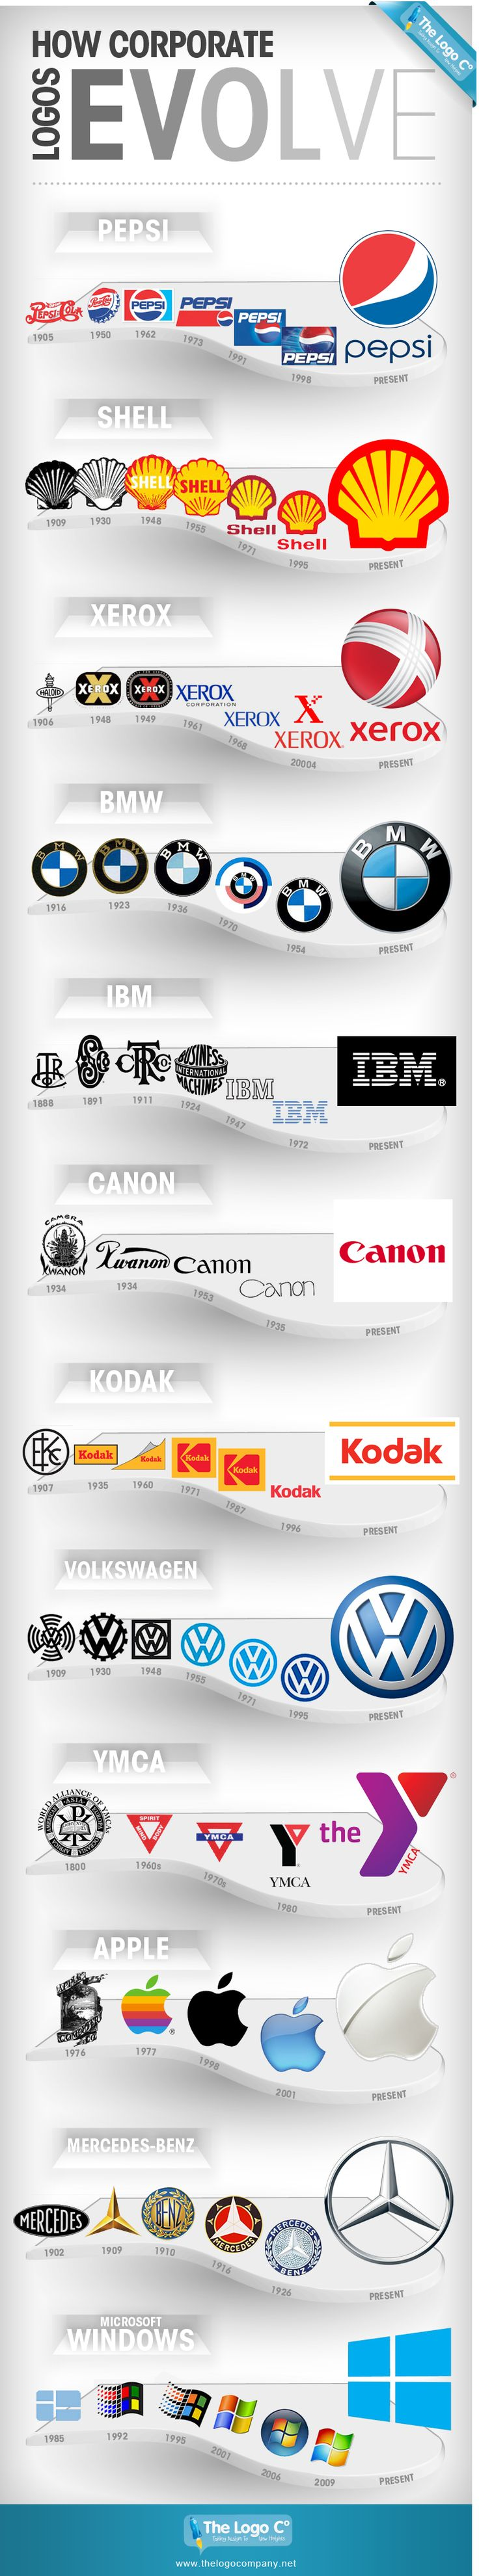 How Corporate Logos Changed Over the Years [Infographic] - An Infographic from BestInfographics.co